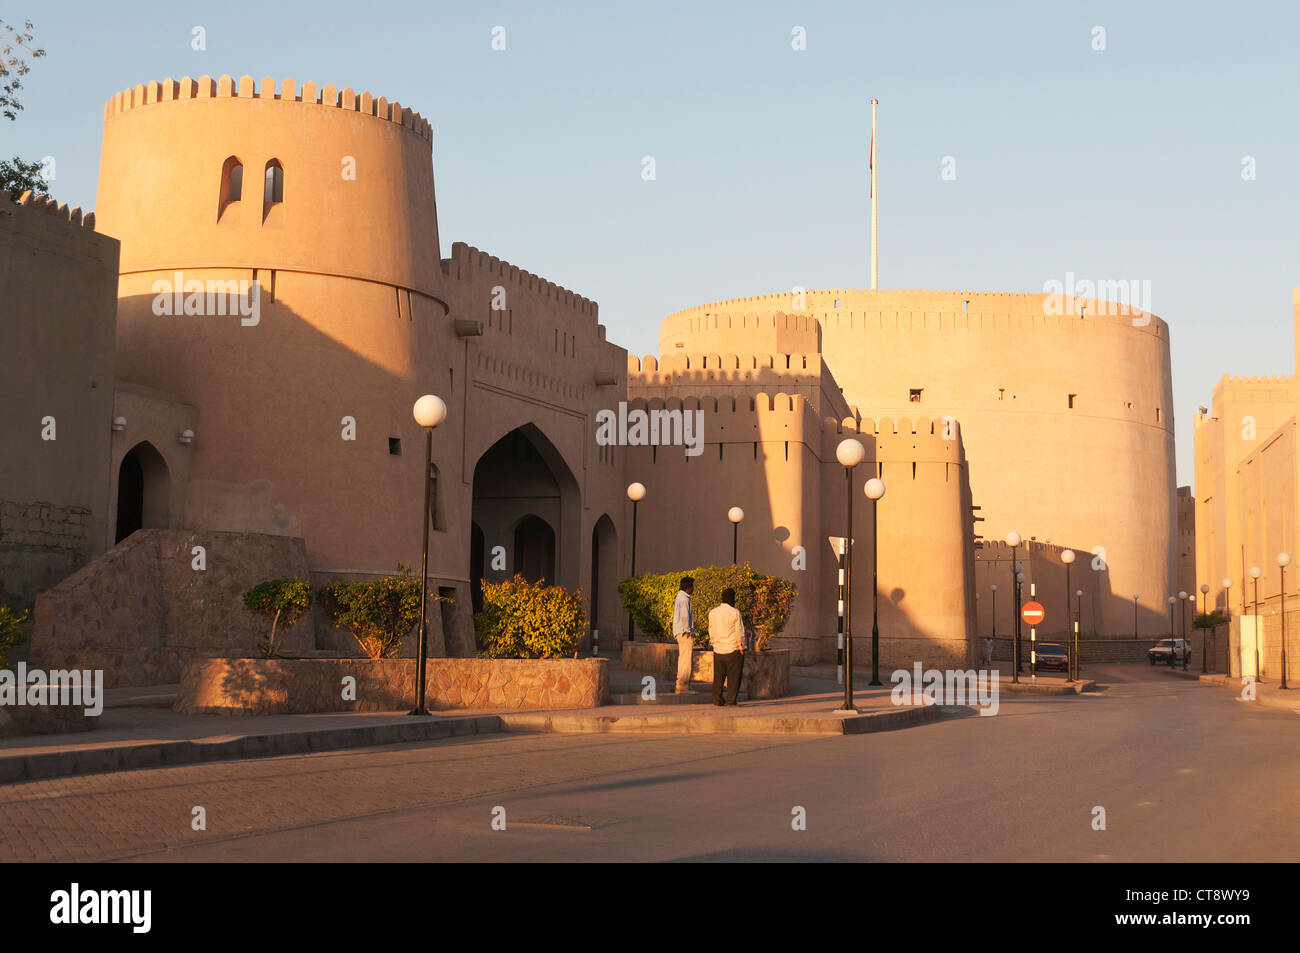 Elk207-2394 Oman, Nizwa, city walls and fort - Stock Image